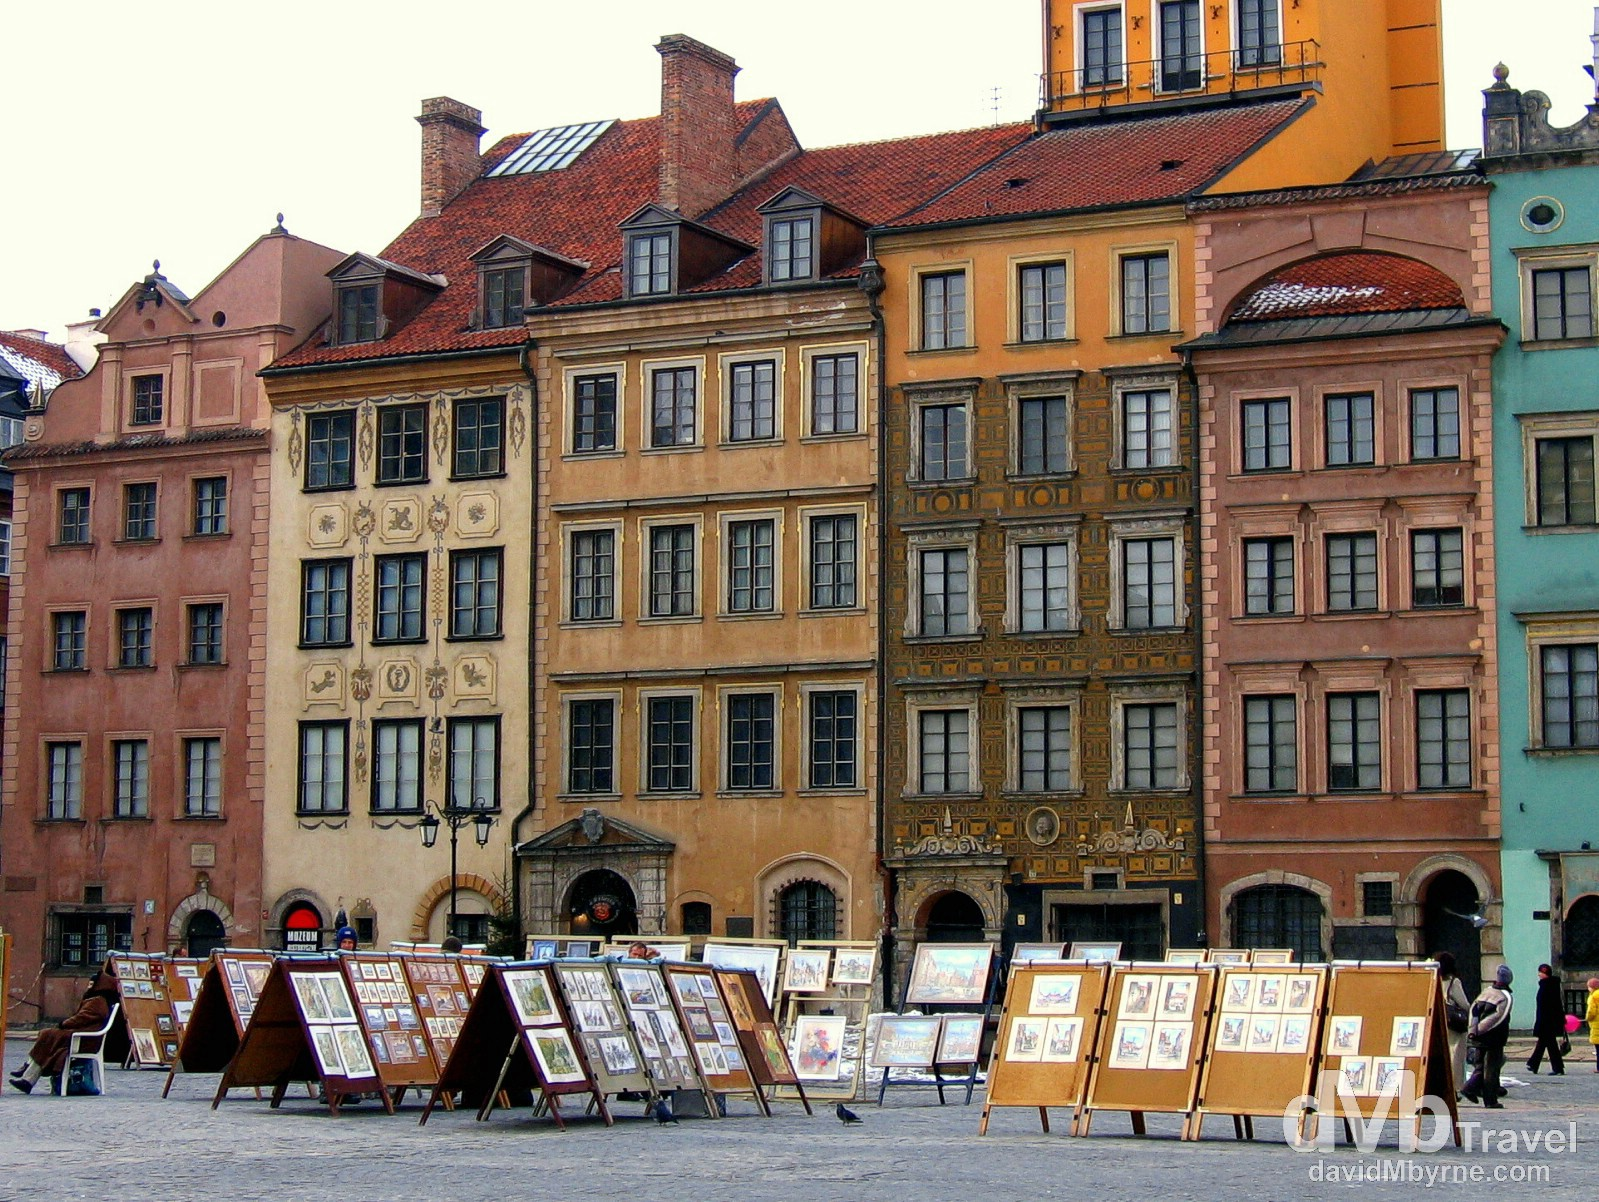 The varying colours of an outdoor art market in Old Town Square, Old Town, Warsaw, Poland. March 5th 2006.